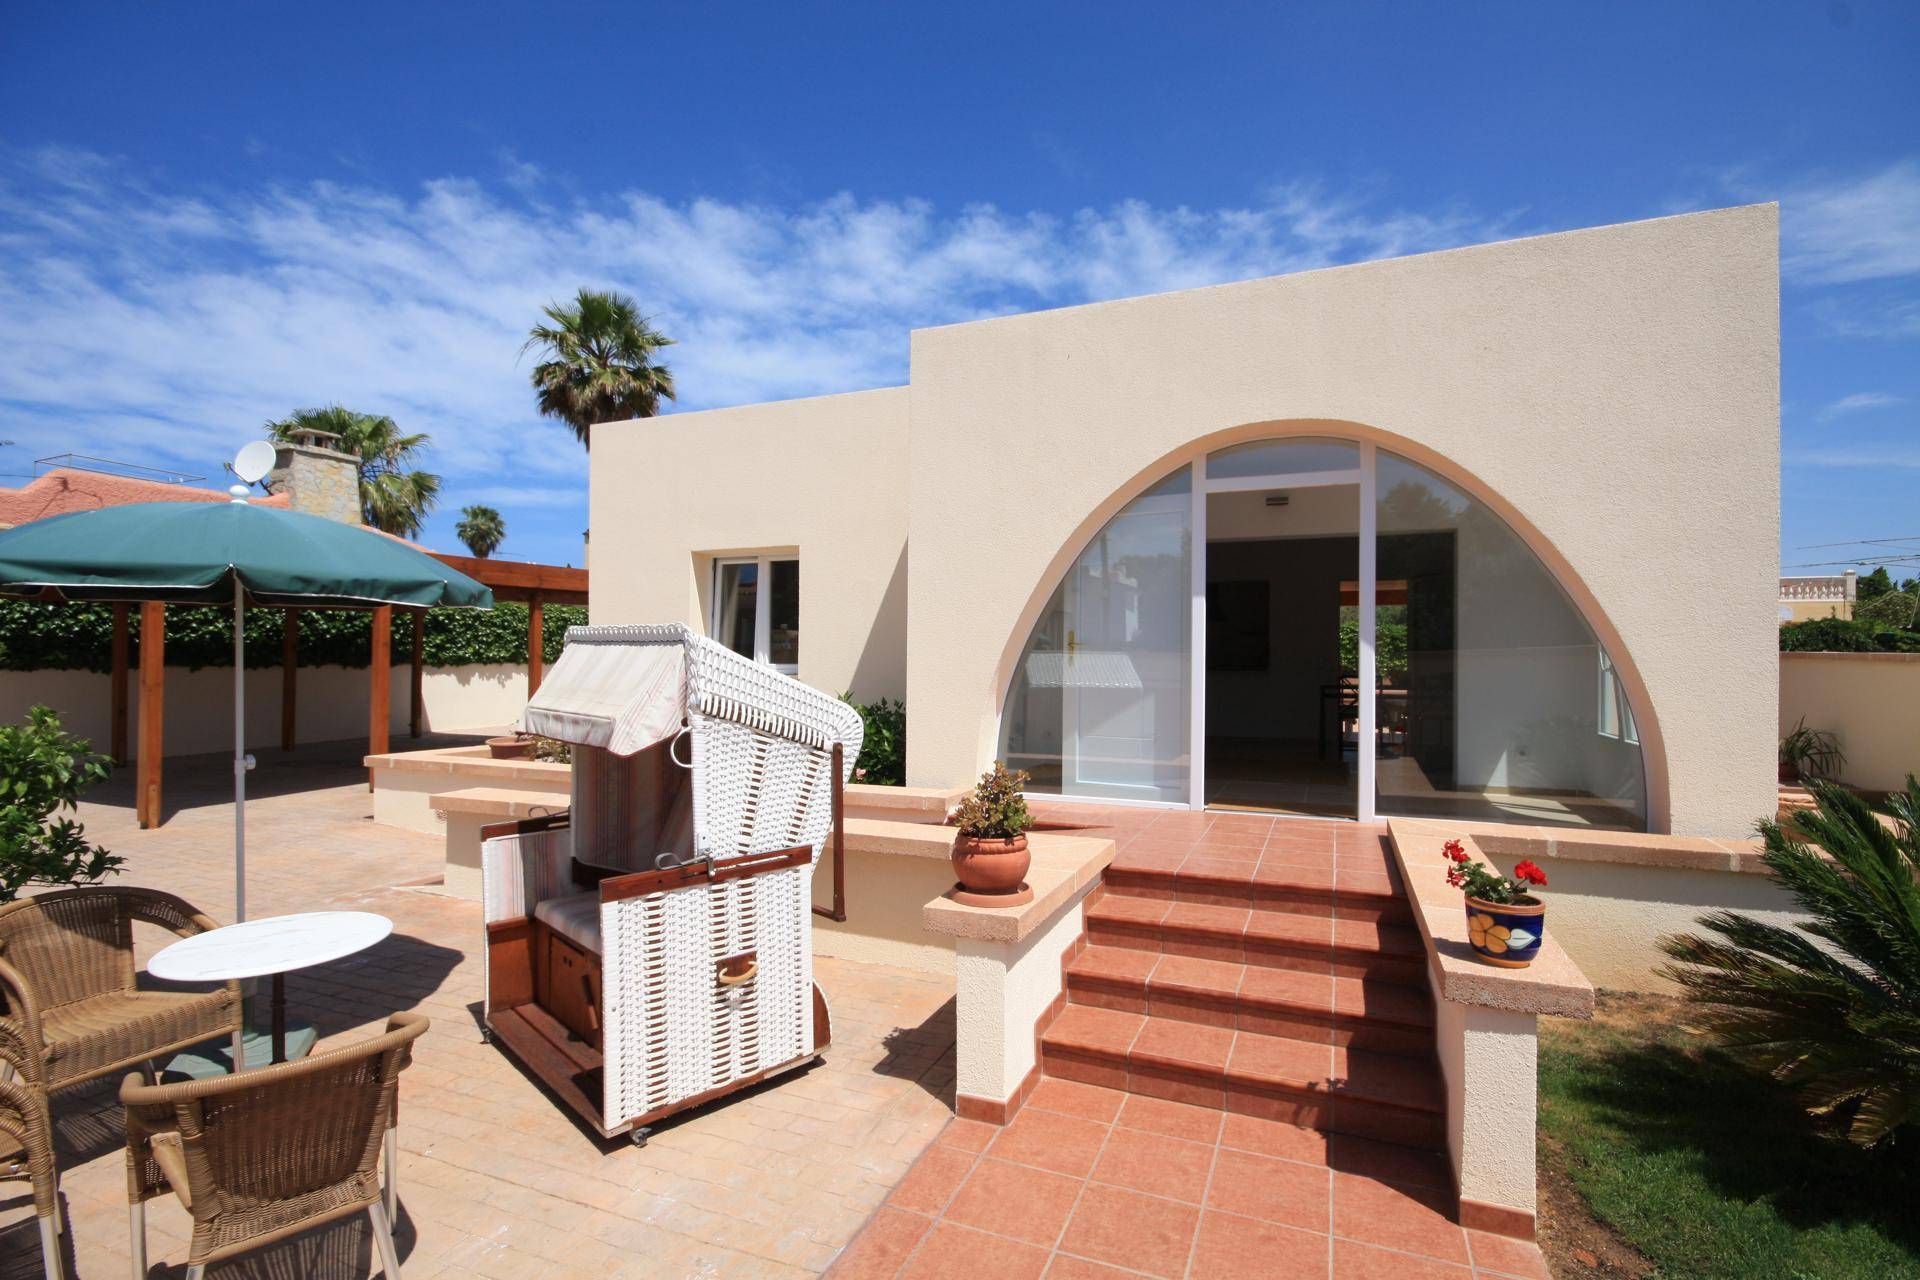 01-12 Small holiday home Mallorca south Bild 13